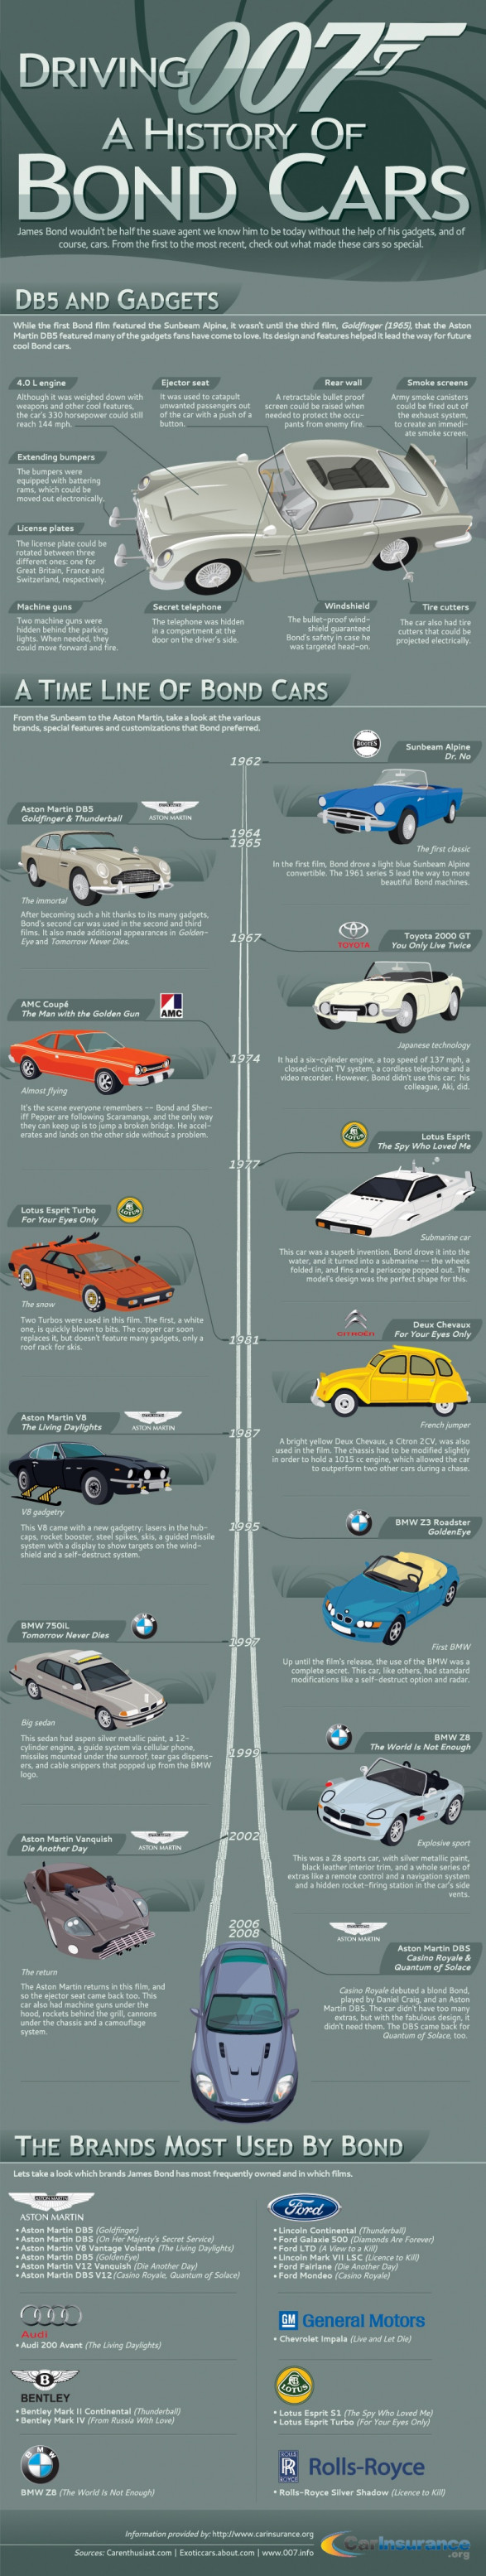 A History of James Bond Cars